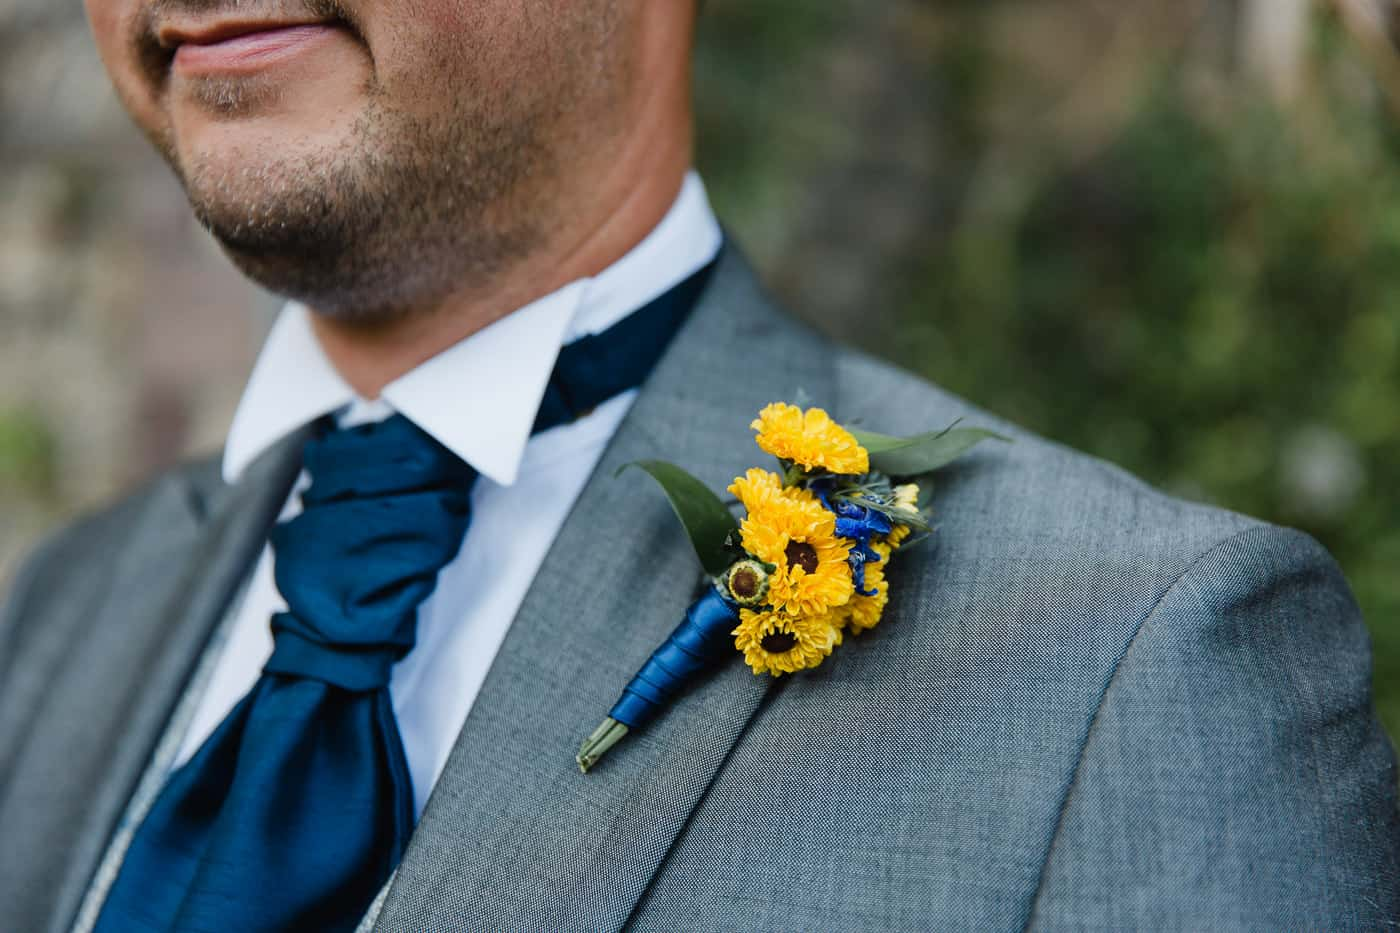 South Wales Wedding Photographer Groom Buttonhole